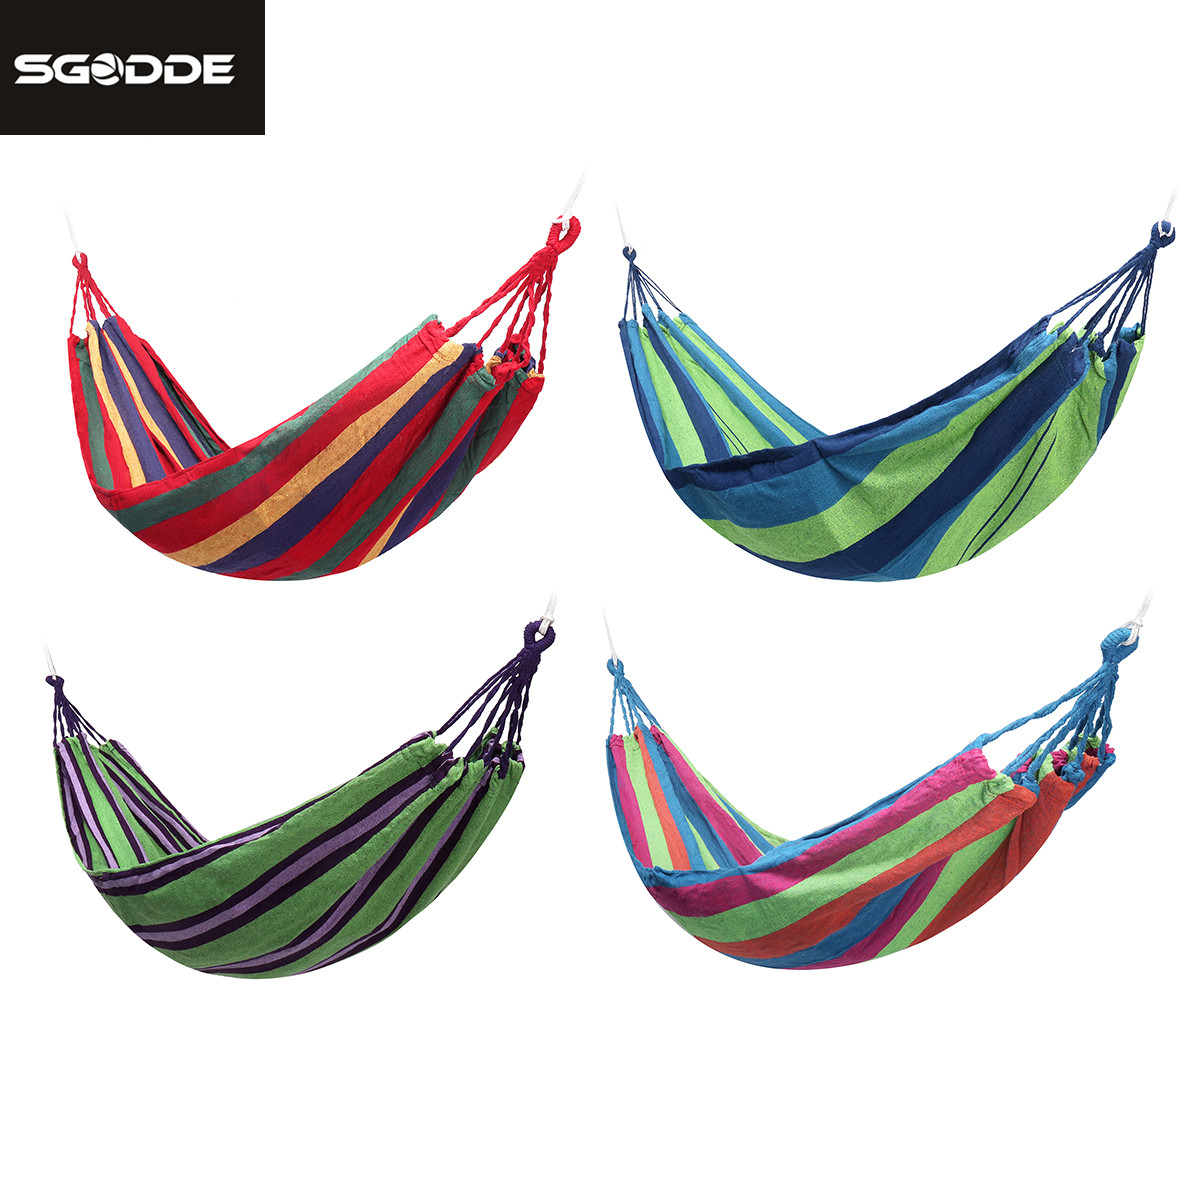 SGODDE 4Colors Portable Hammock Outdoor Hammock Garden Sports Home Travel Camping Swing Canvas Stripe Hang Bed Hammock With Bag